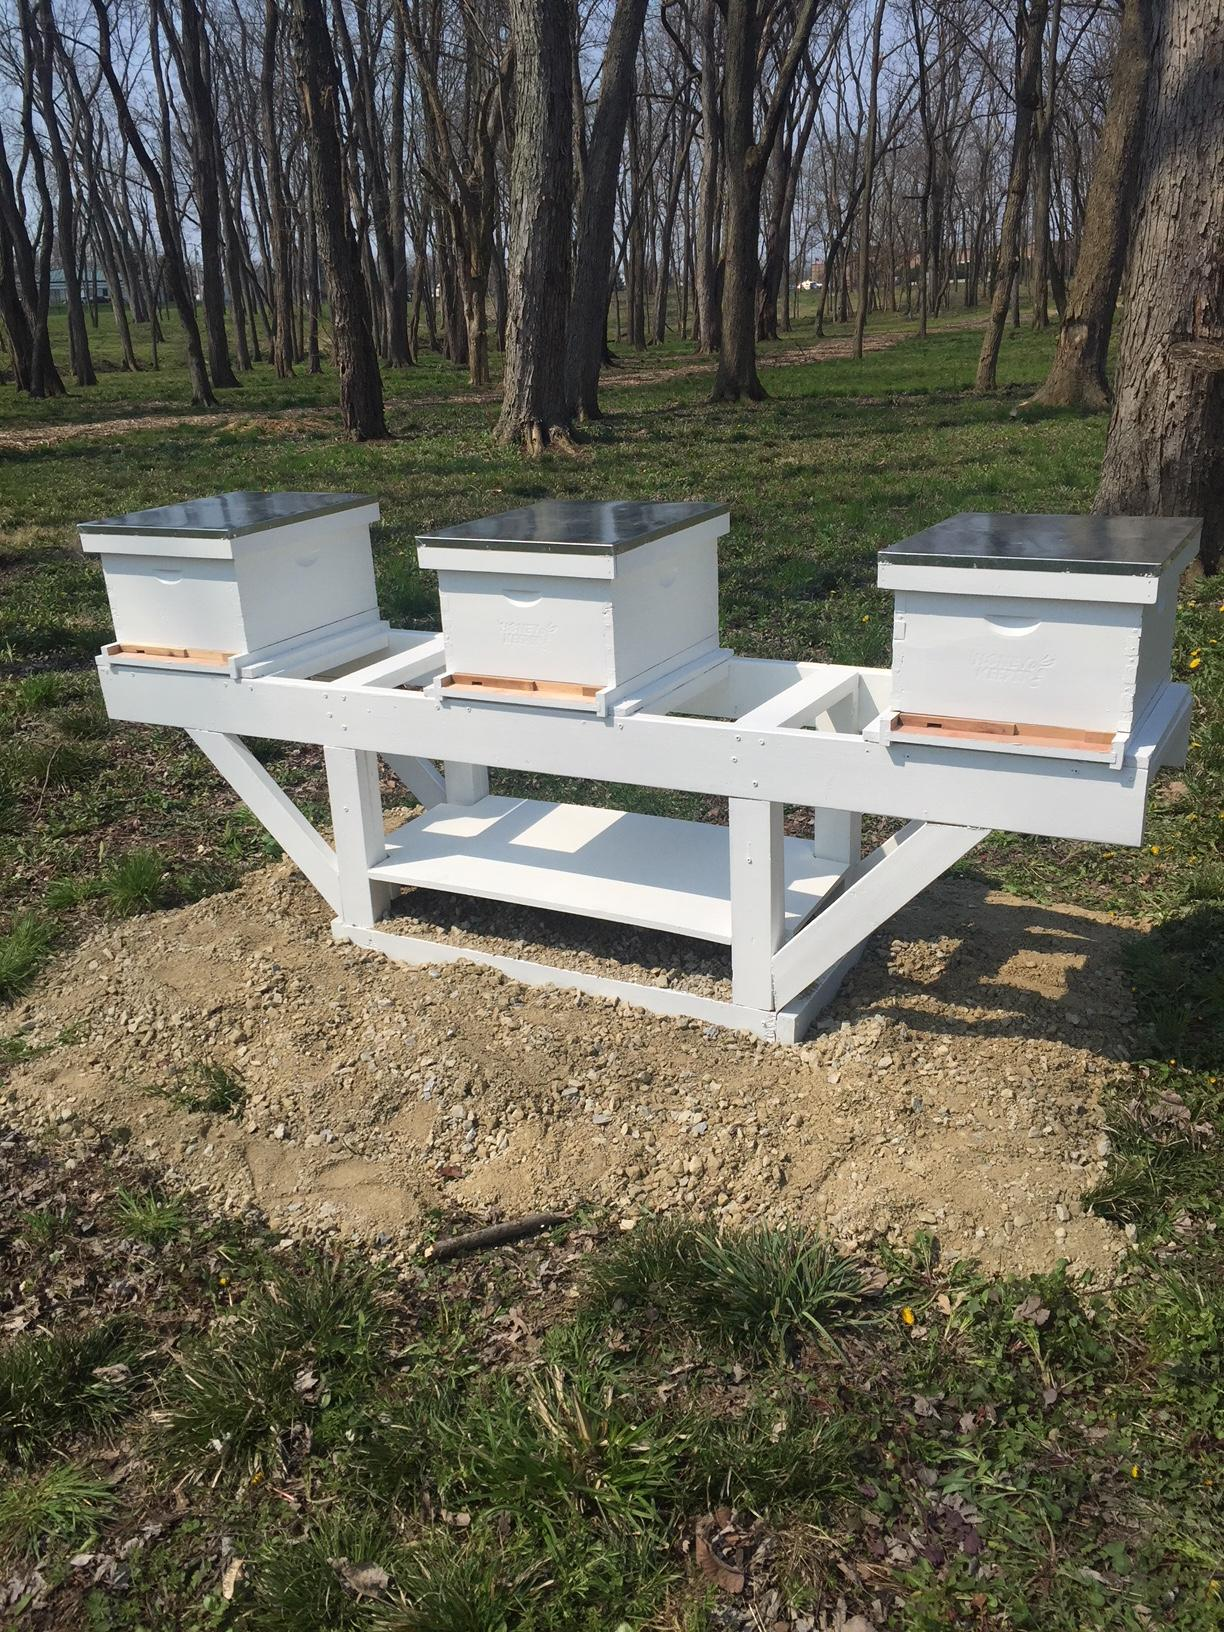 Act Small, Think Big: The Beginning of a Beekeeping Journey at SugarCreek